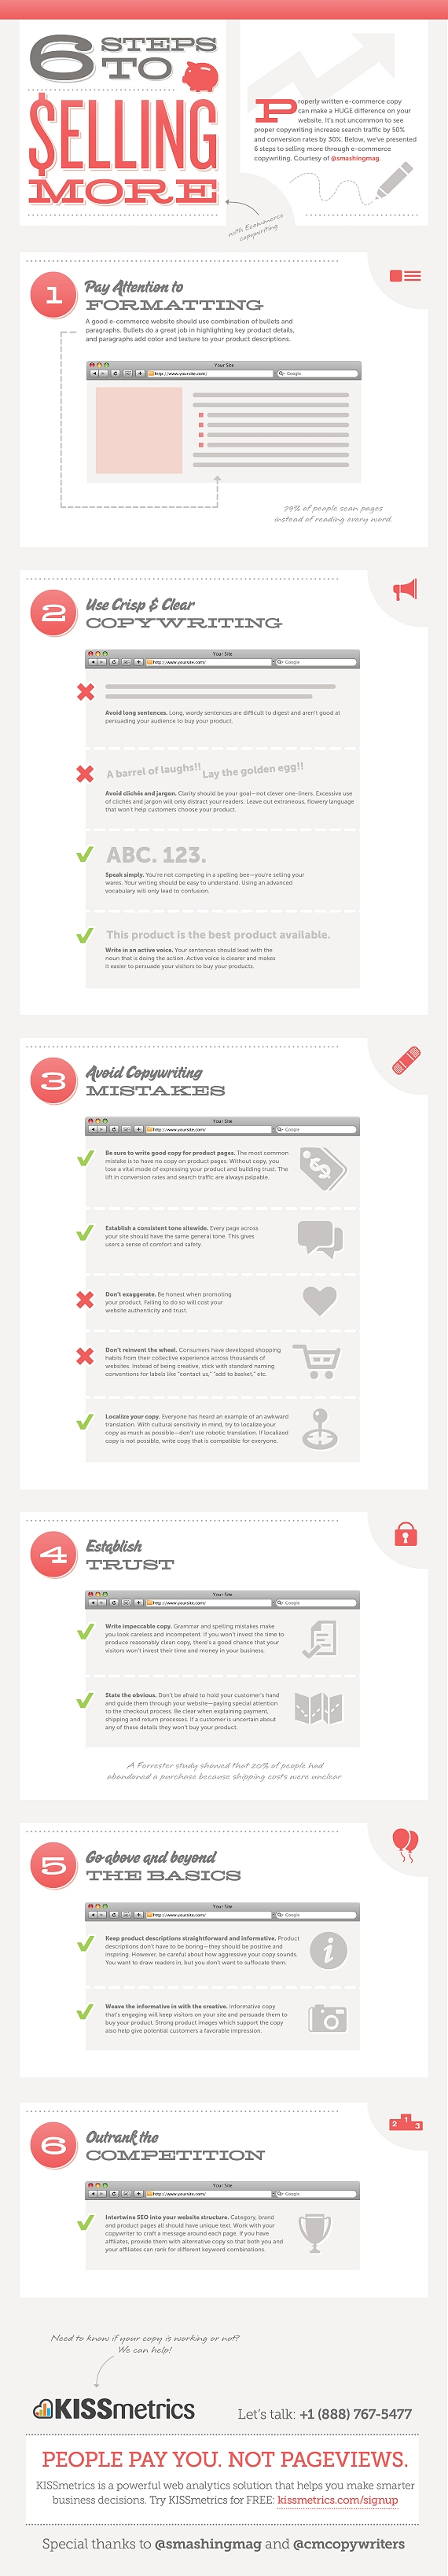 6 Steps to Selling More with eCommerce Copywriting [Infographic]